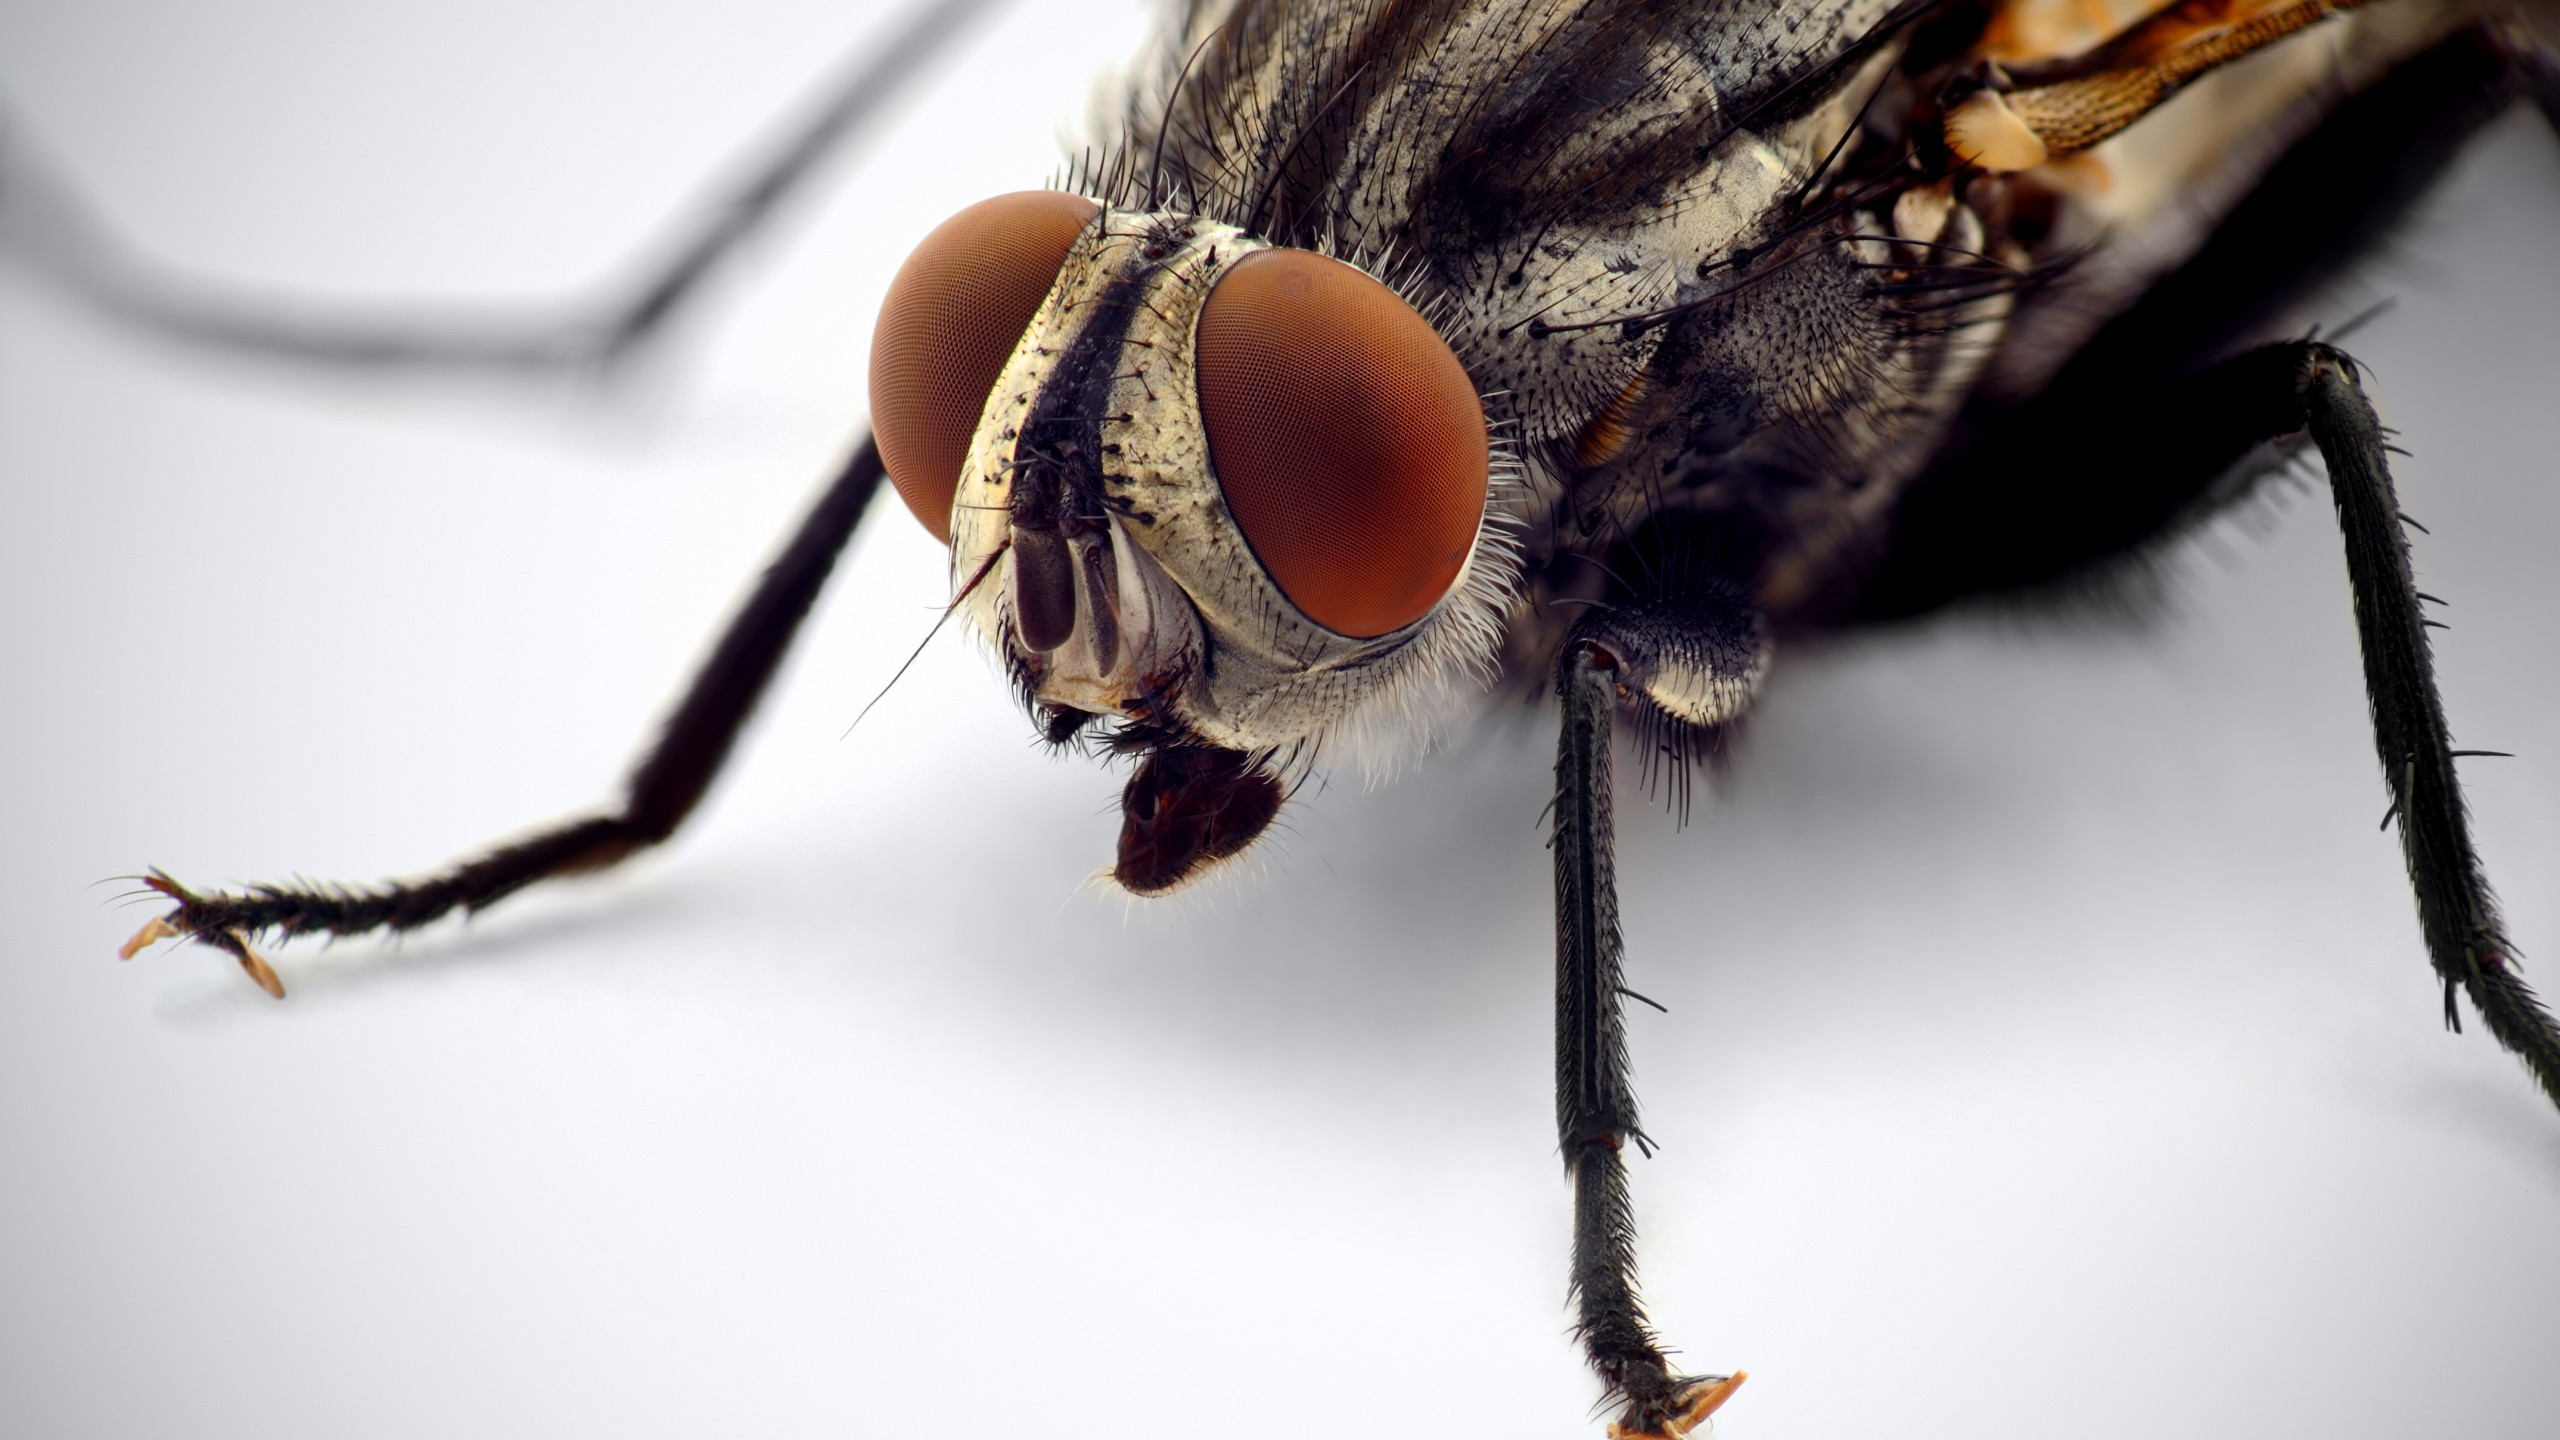 Wallpaper Fly Macro Eyes Insects White Background